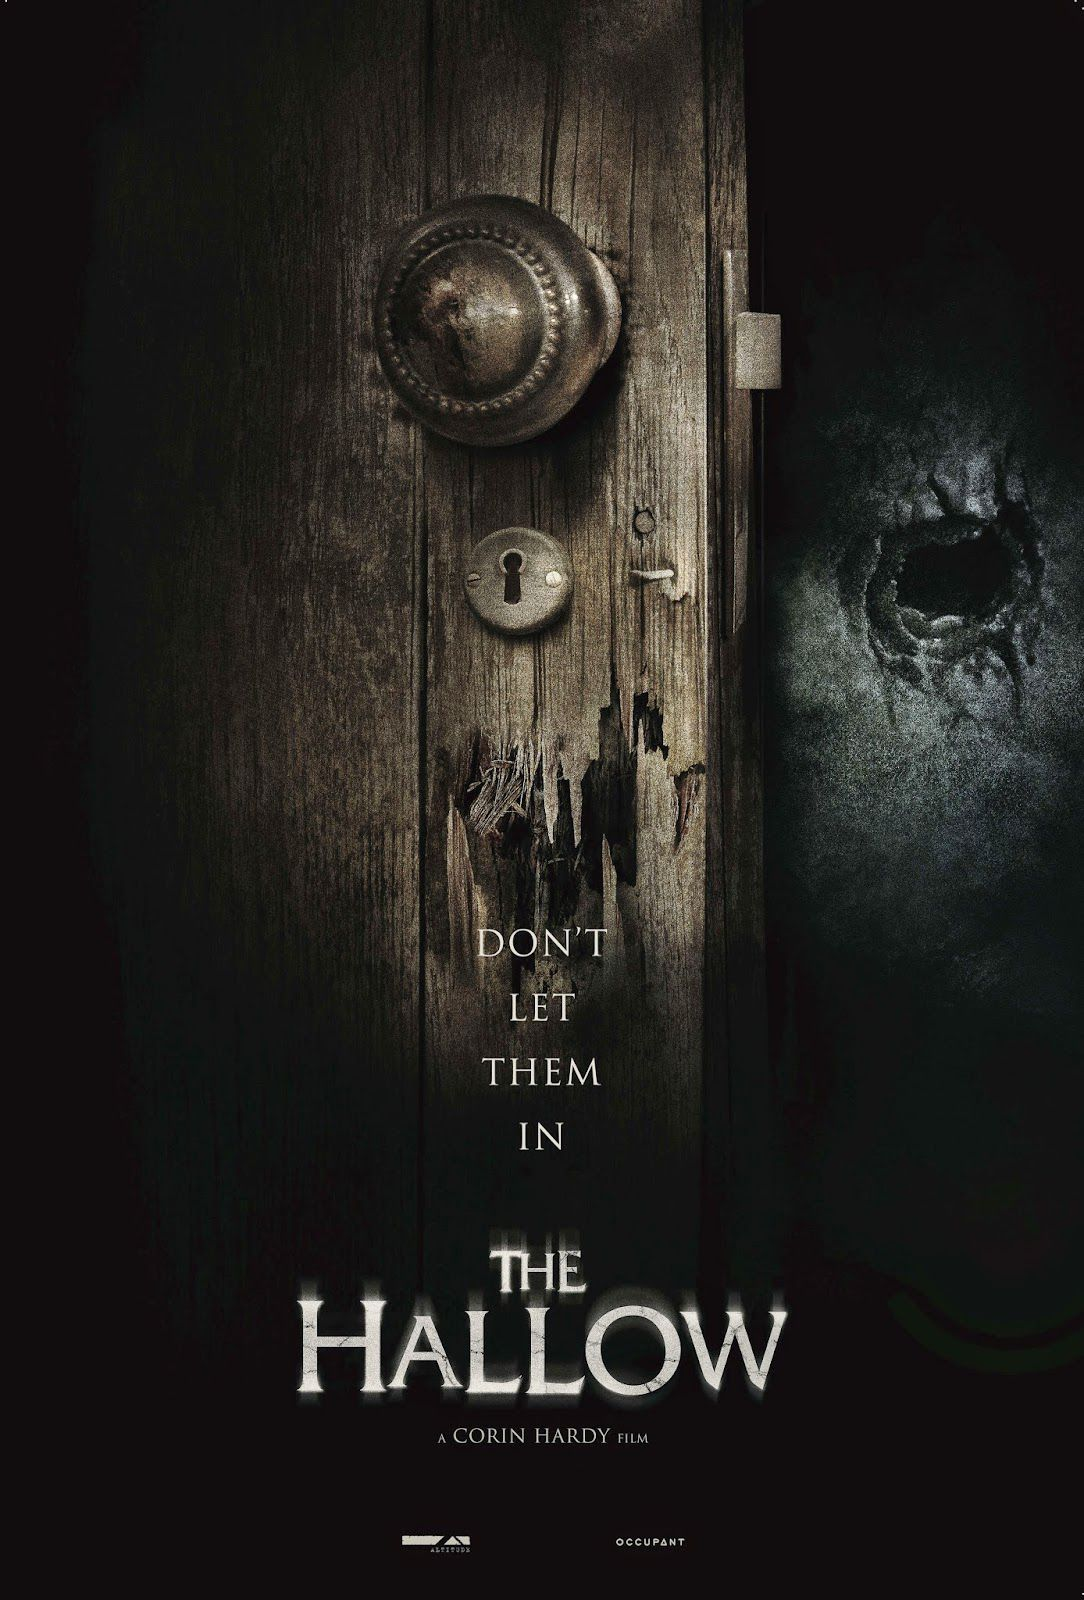 The Woods aka The Hallow (2015)